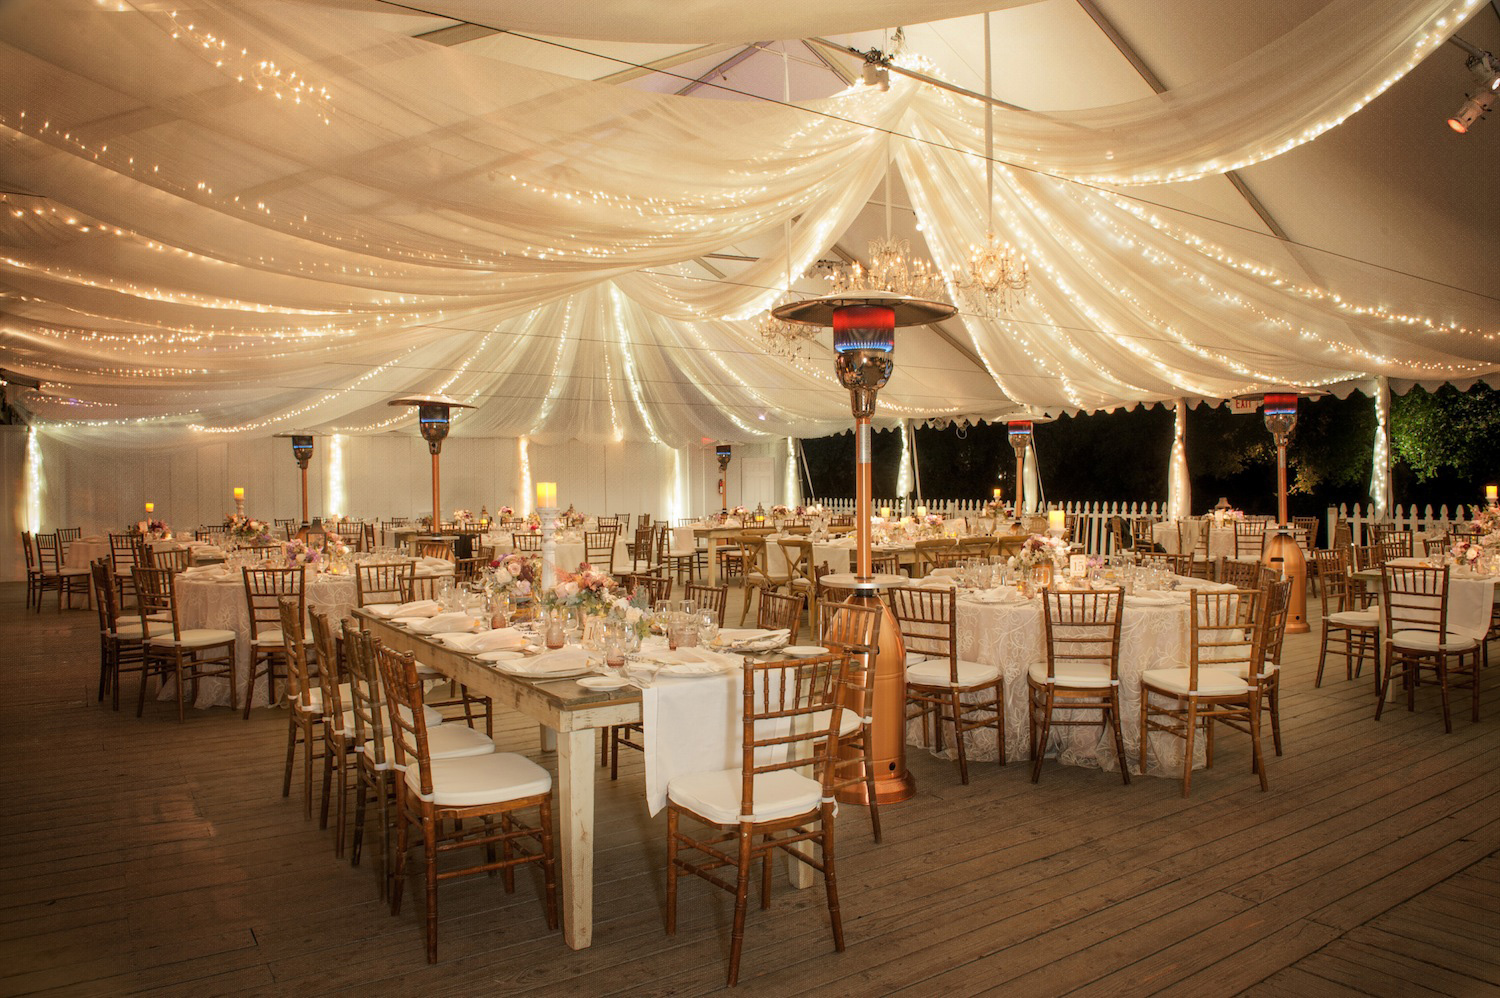 Rustic Shabby Chic Wedding With String Lights At Reception